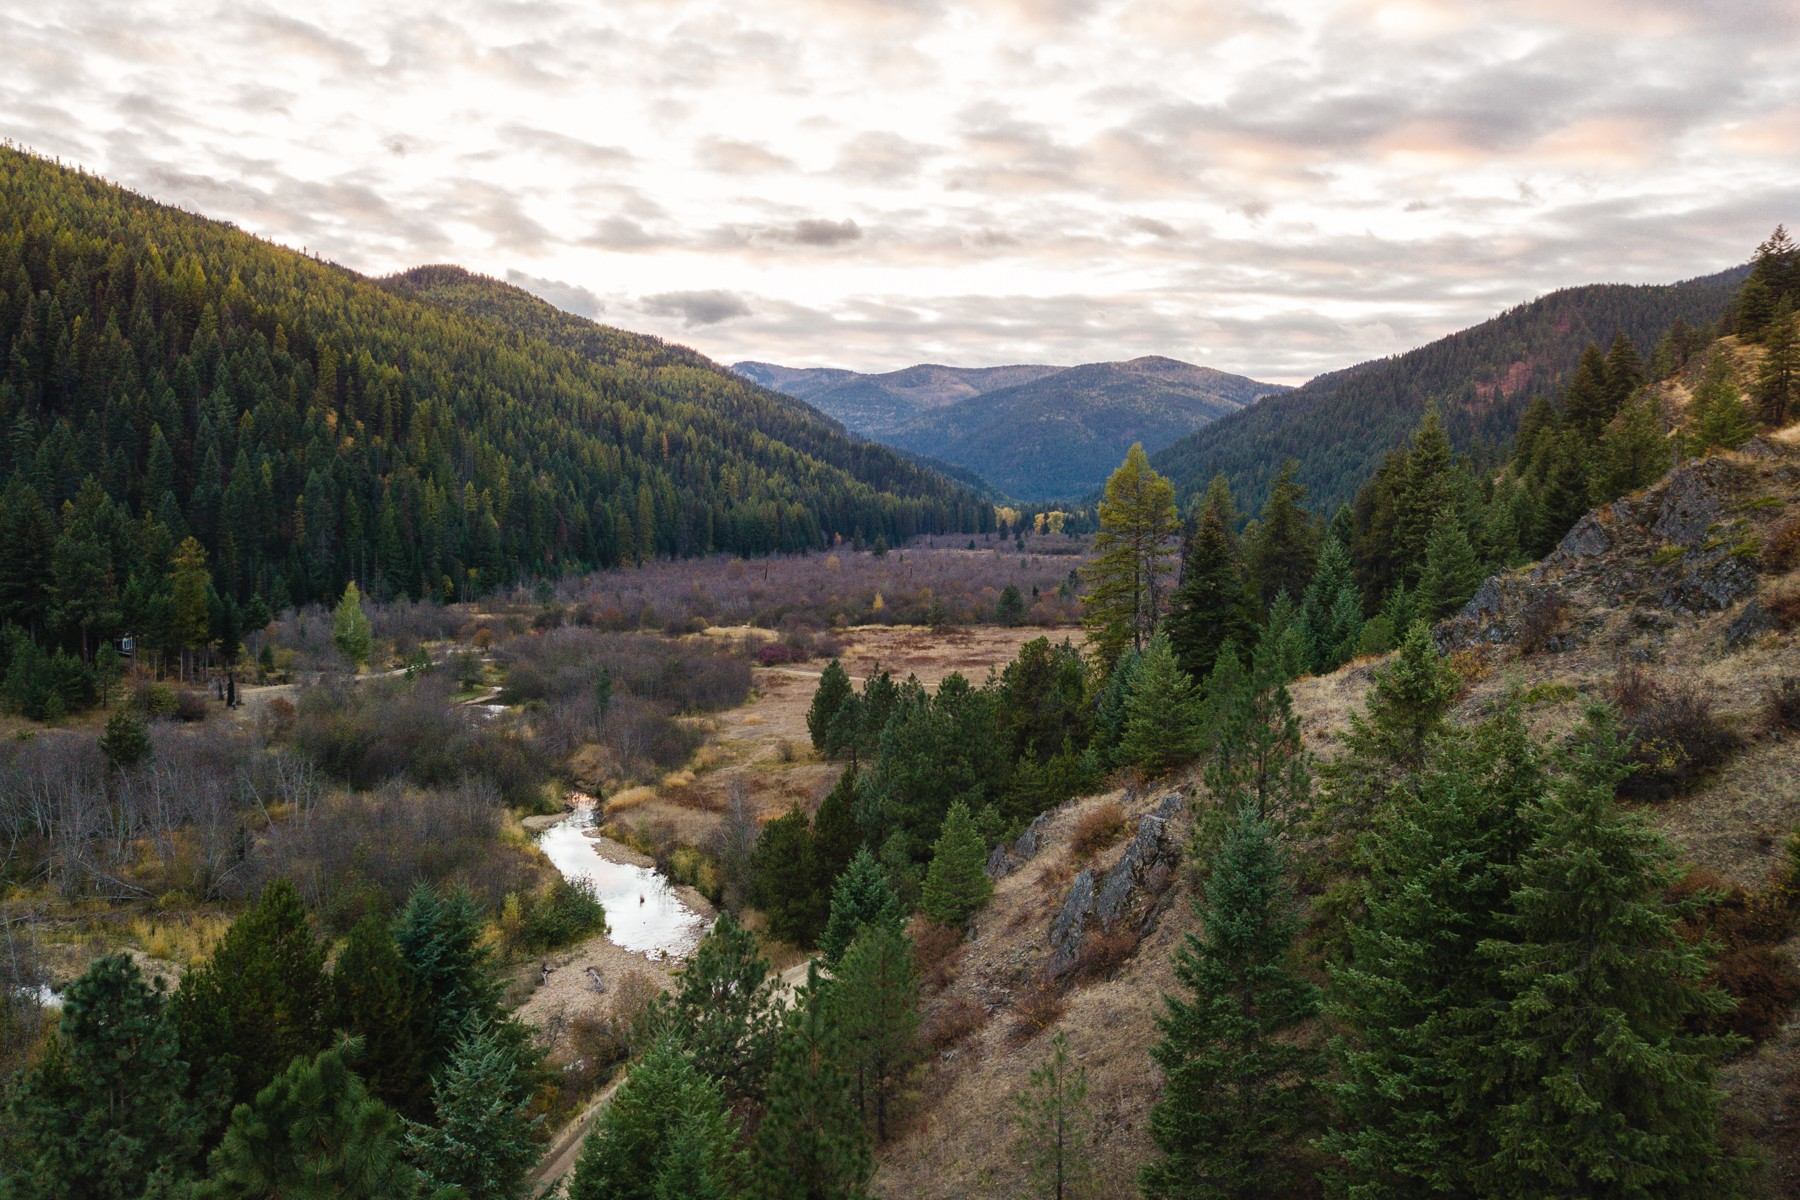 Land for Sale at Lot 15 Whitepine Creek Road Trout Creek, Montana 59874 United States